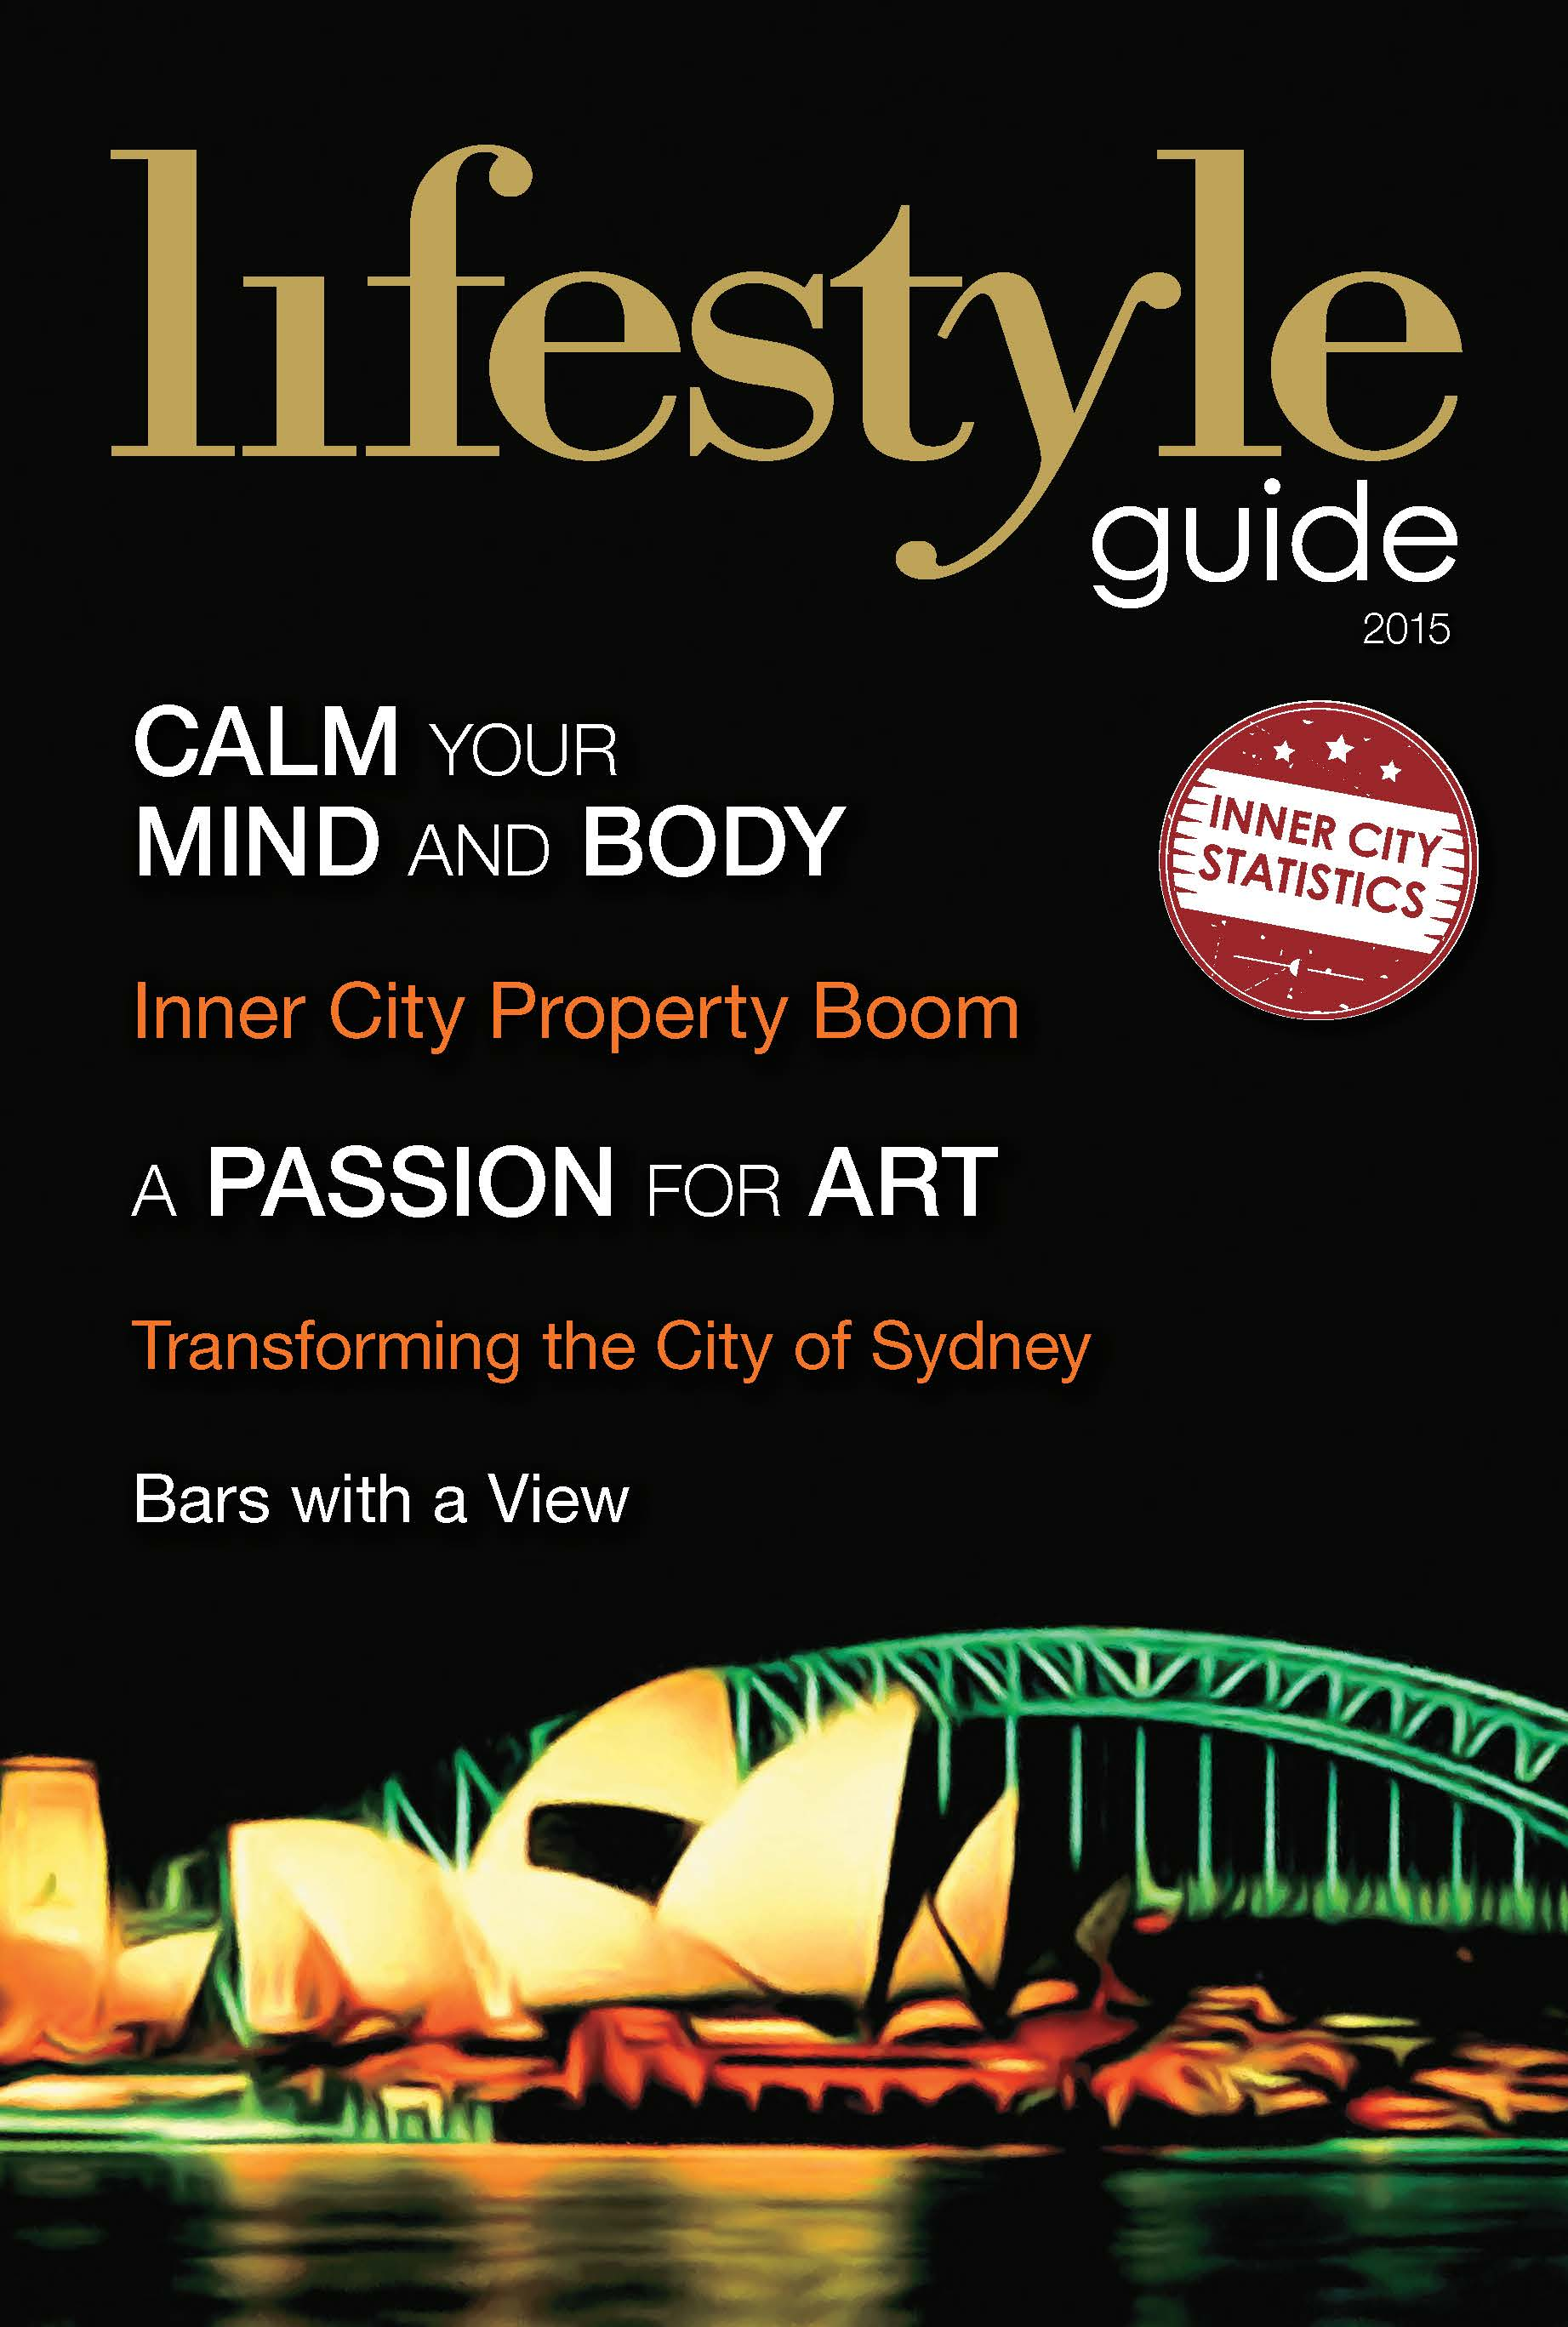 The Lifestyle Guide 2015, Calm your mind and body